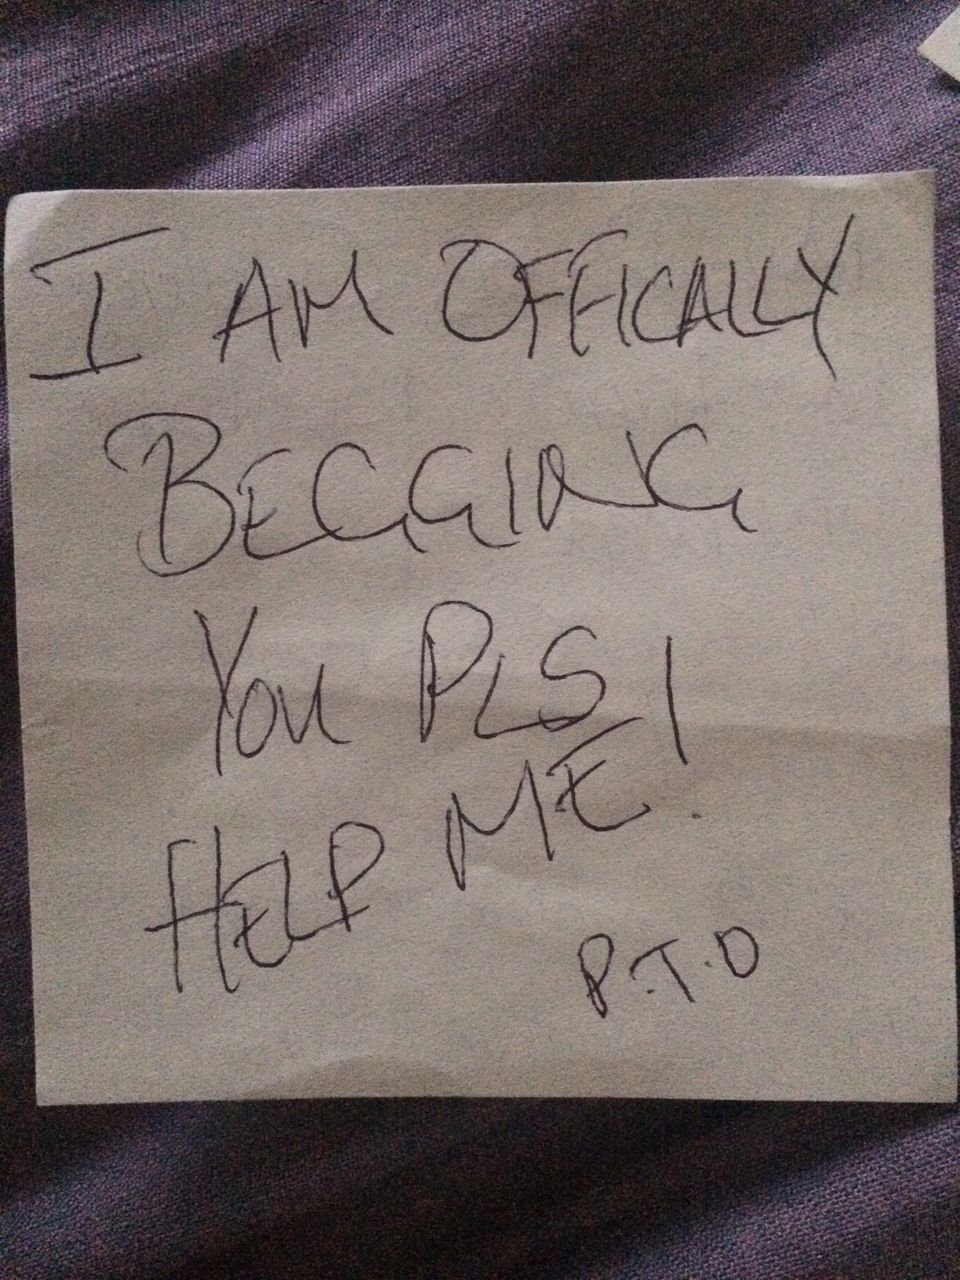 Post-It Notes Reveal Anguish Of Disabled Man Who Killed Himself After £20 Benefit